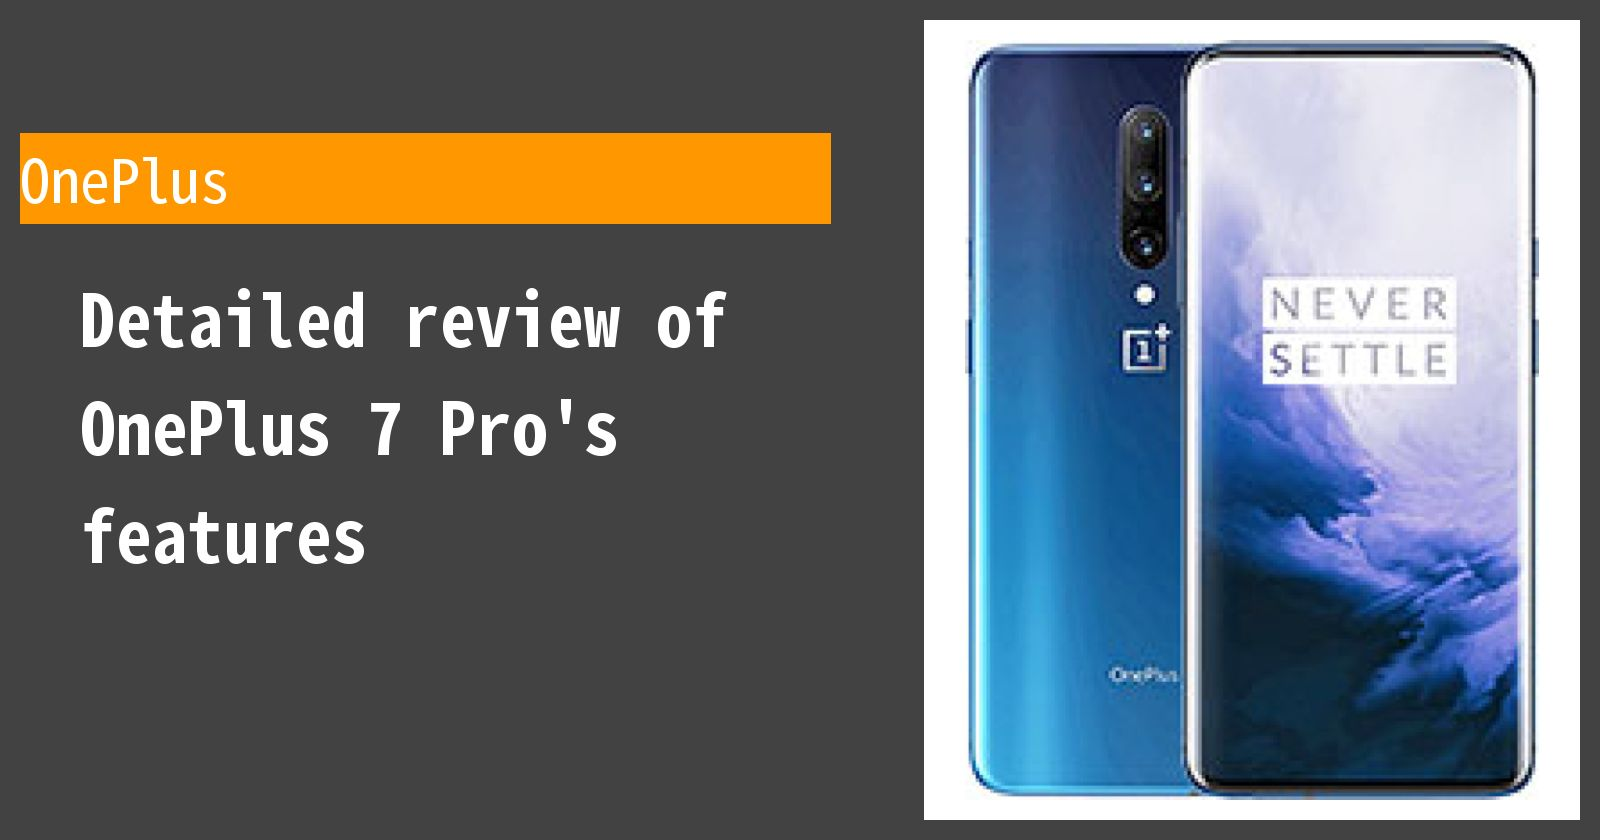 Detailed review of OnePlus 7 Pro's features